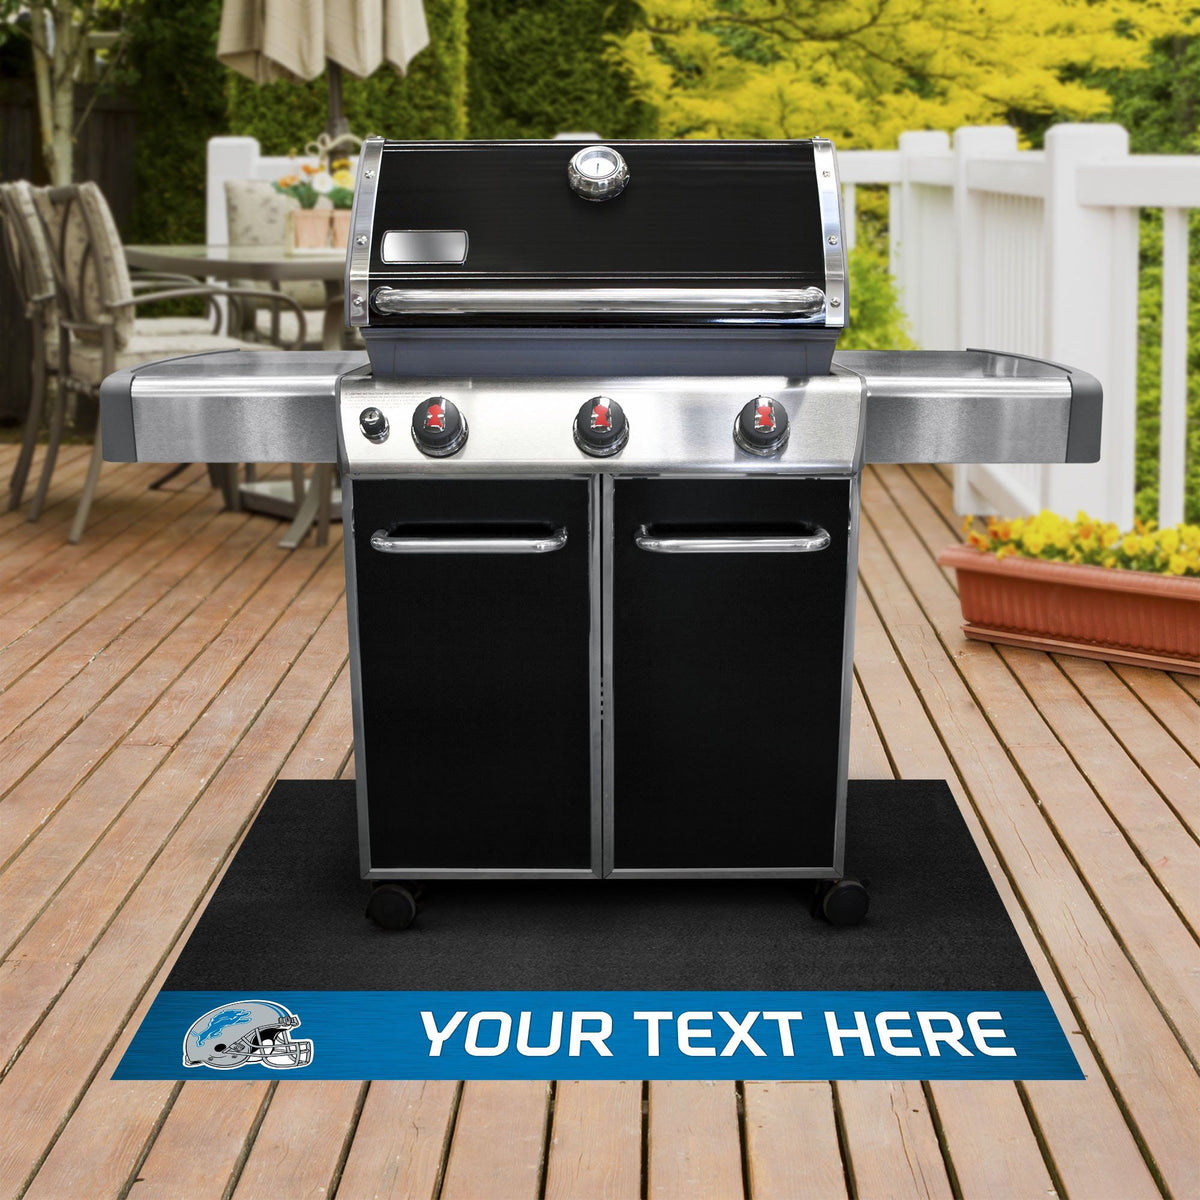 NFL Personalized Grill Mat Personalized Grill Mat Fan Mats Detroit Lions